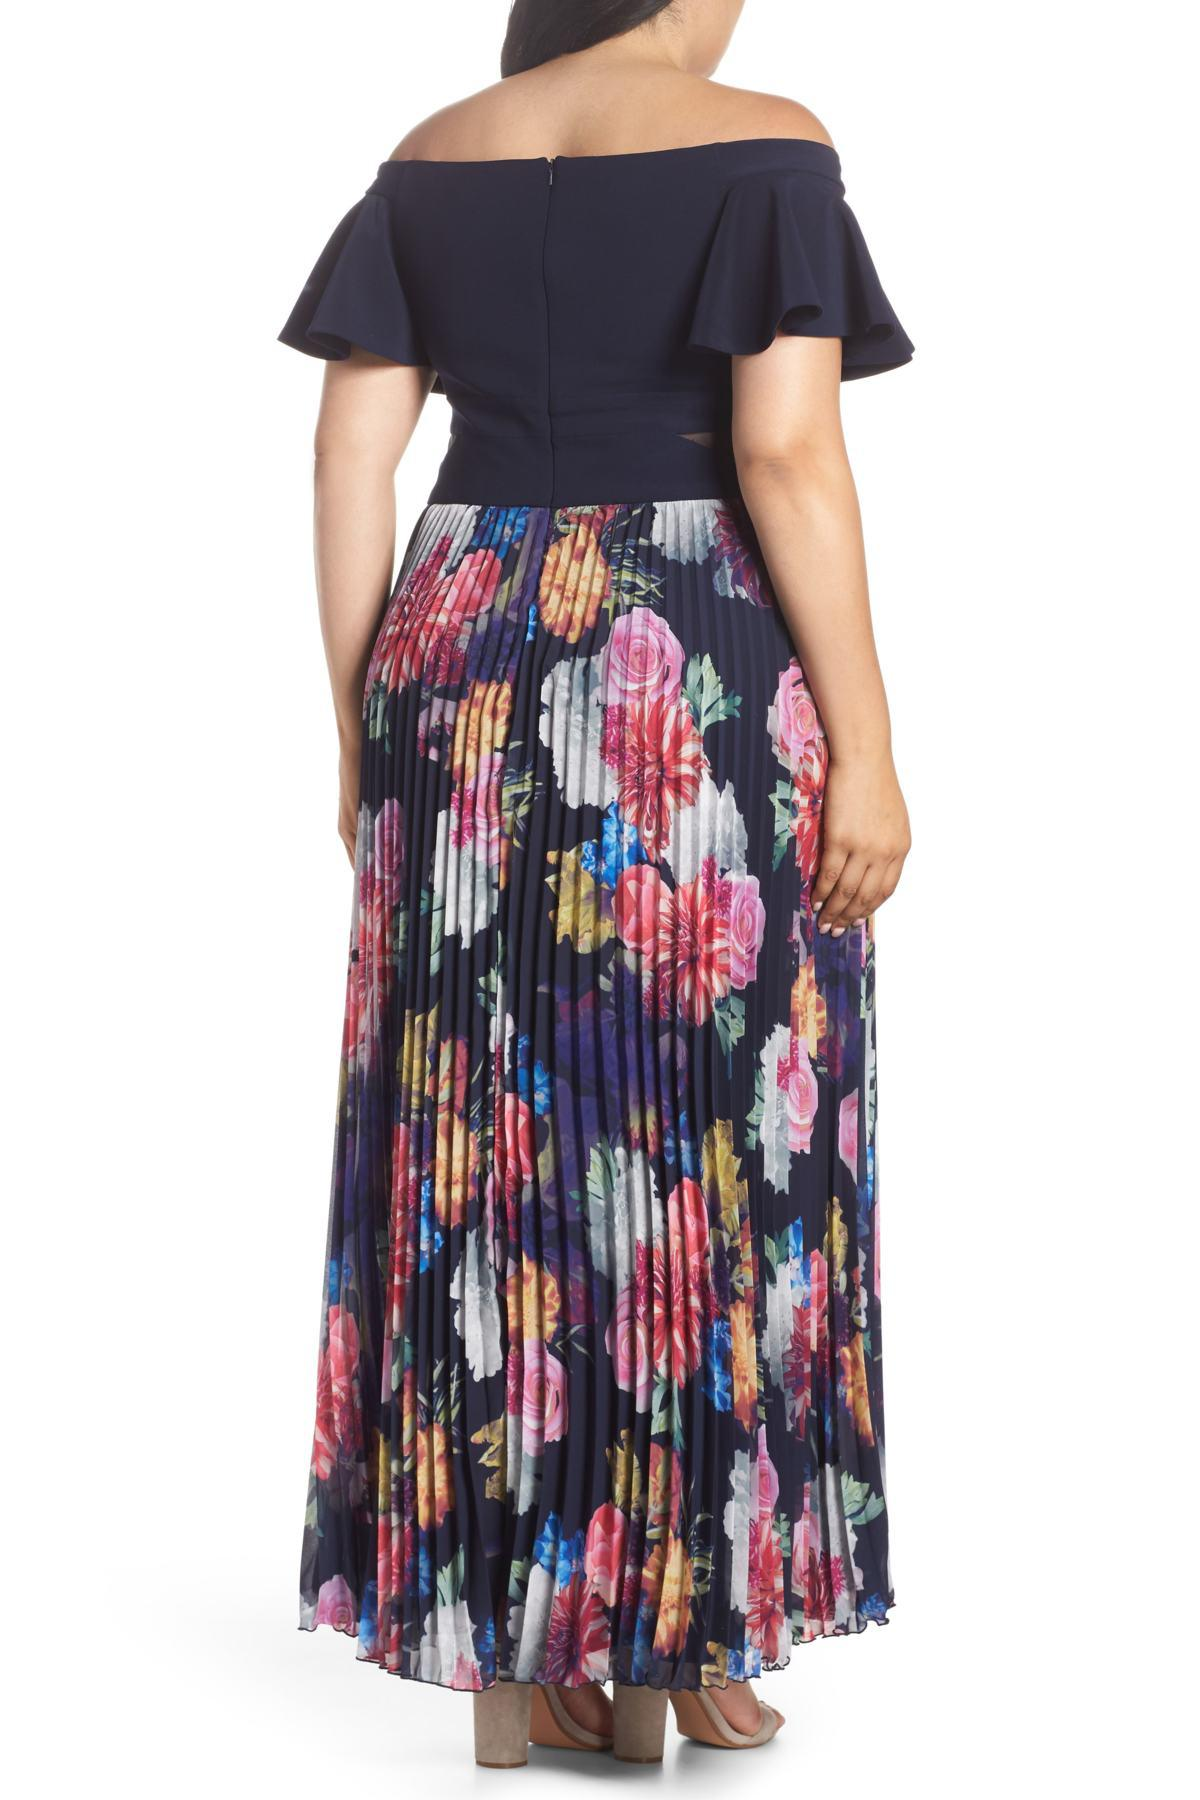 9f6370330be Lyst - Xscape Ruffle Sleeve Off The Shoulder Pleated Maxi Dress ...